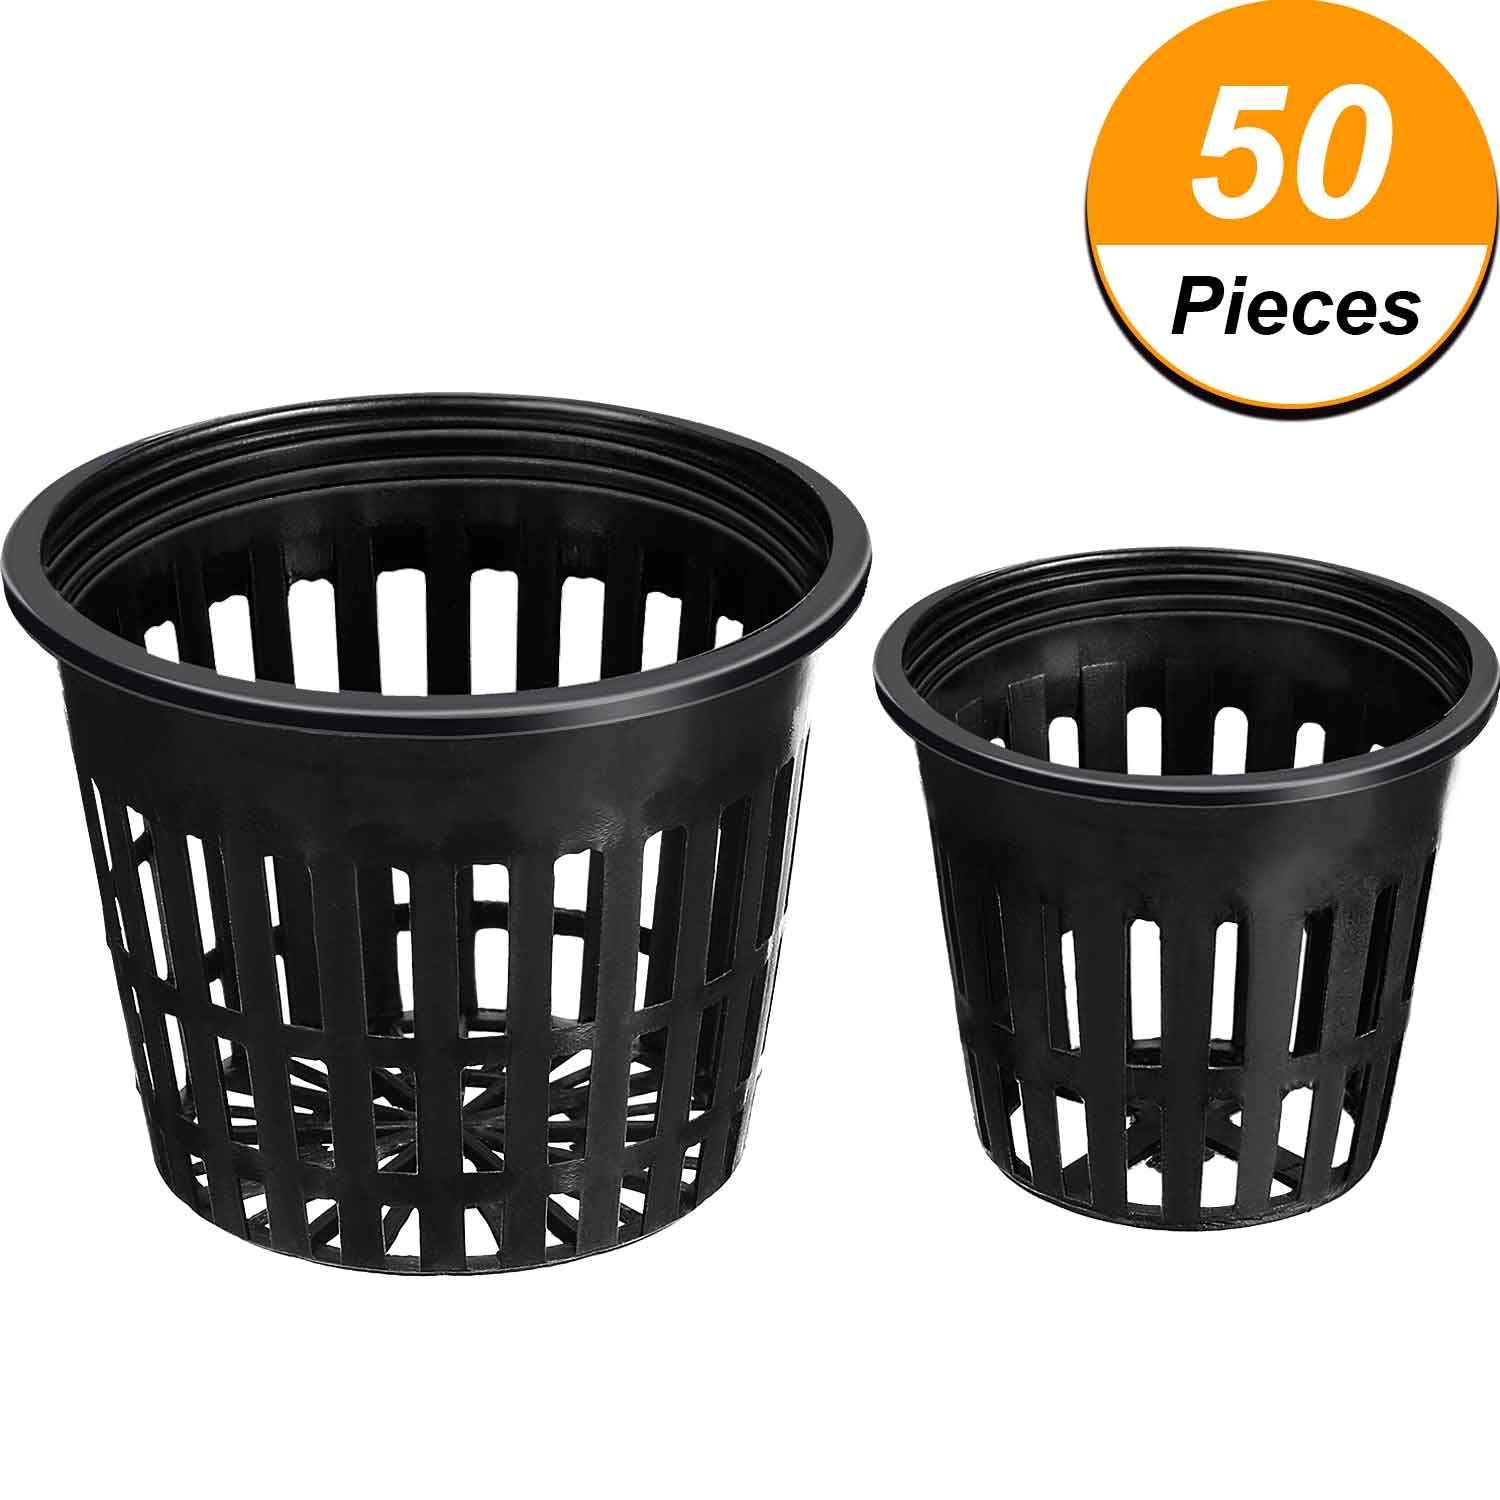 Jovitec 50 Pieces Net Cup Set, 25 Pack 3 inch Net Cups Slotted Mesh Wide Lip with 25 Pack 2 inch Net Cups Filter Plant Net Pot Bucket Basket for Hydroponics